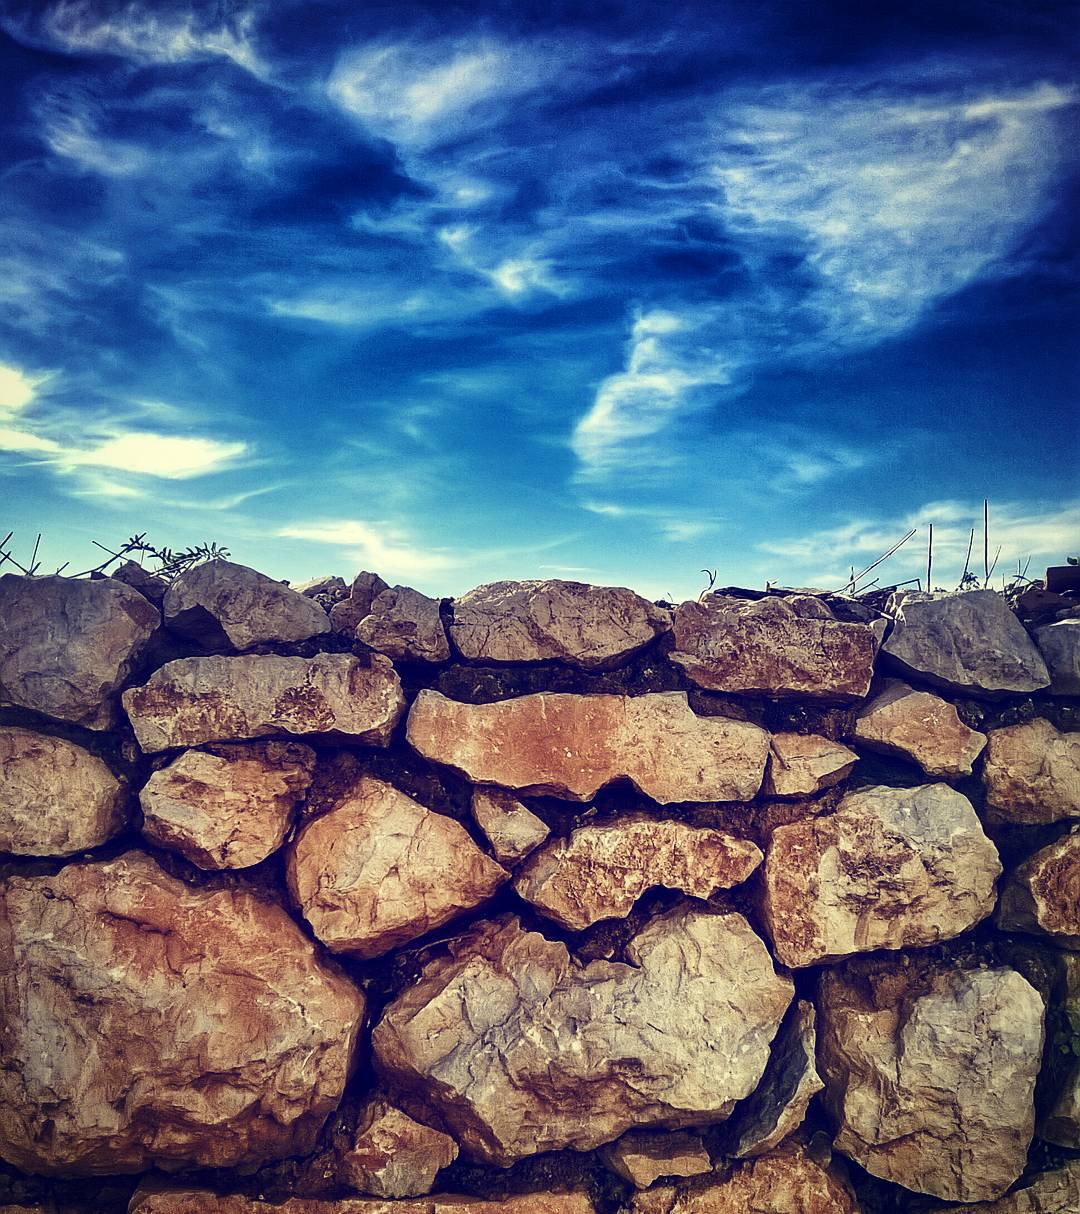 Sky and stone. What's on the other side? #sky #walls #stonewall #photographyel